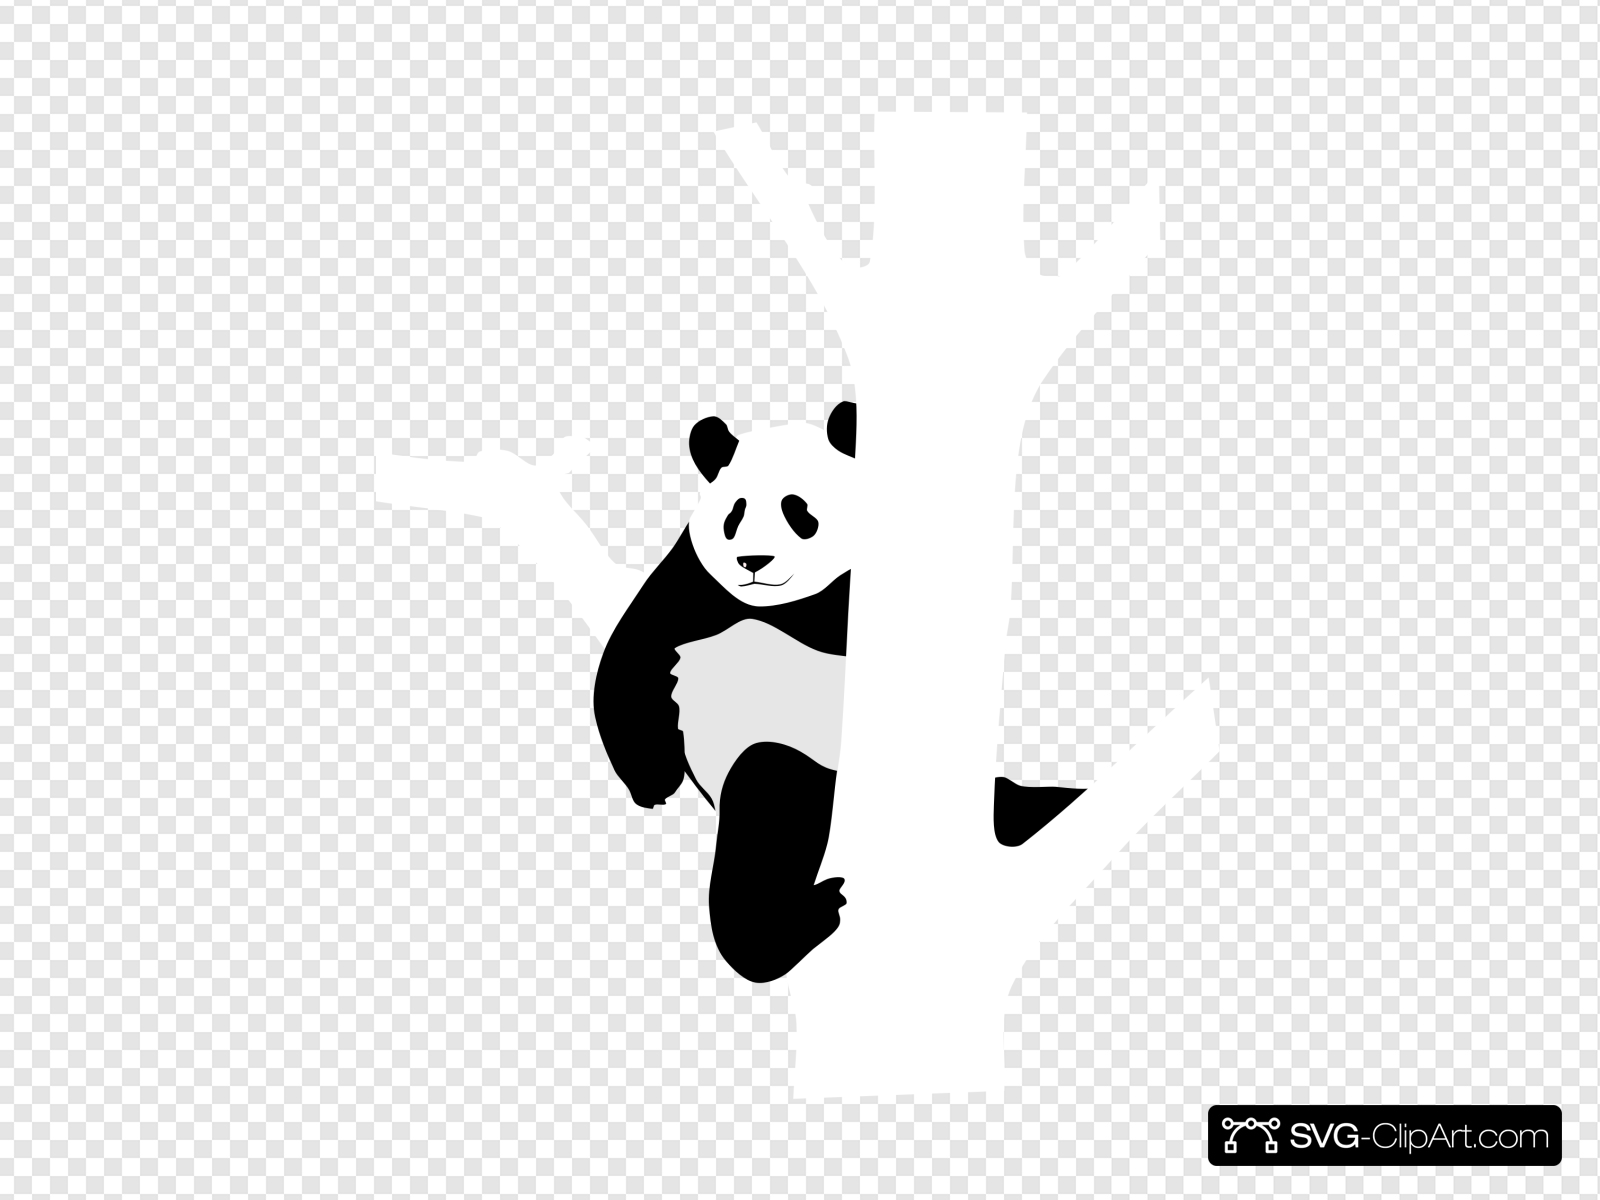 Panda In A Tree Clip art, Icon and SVG.